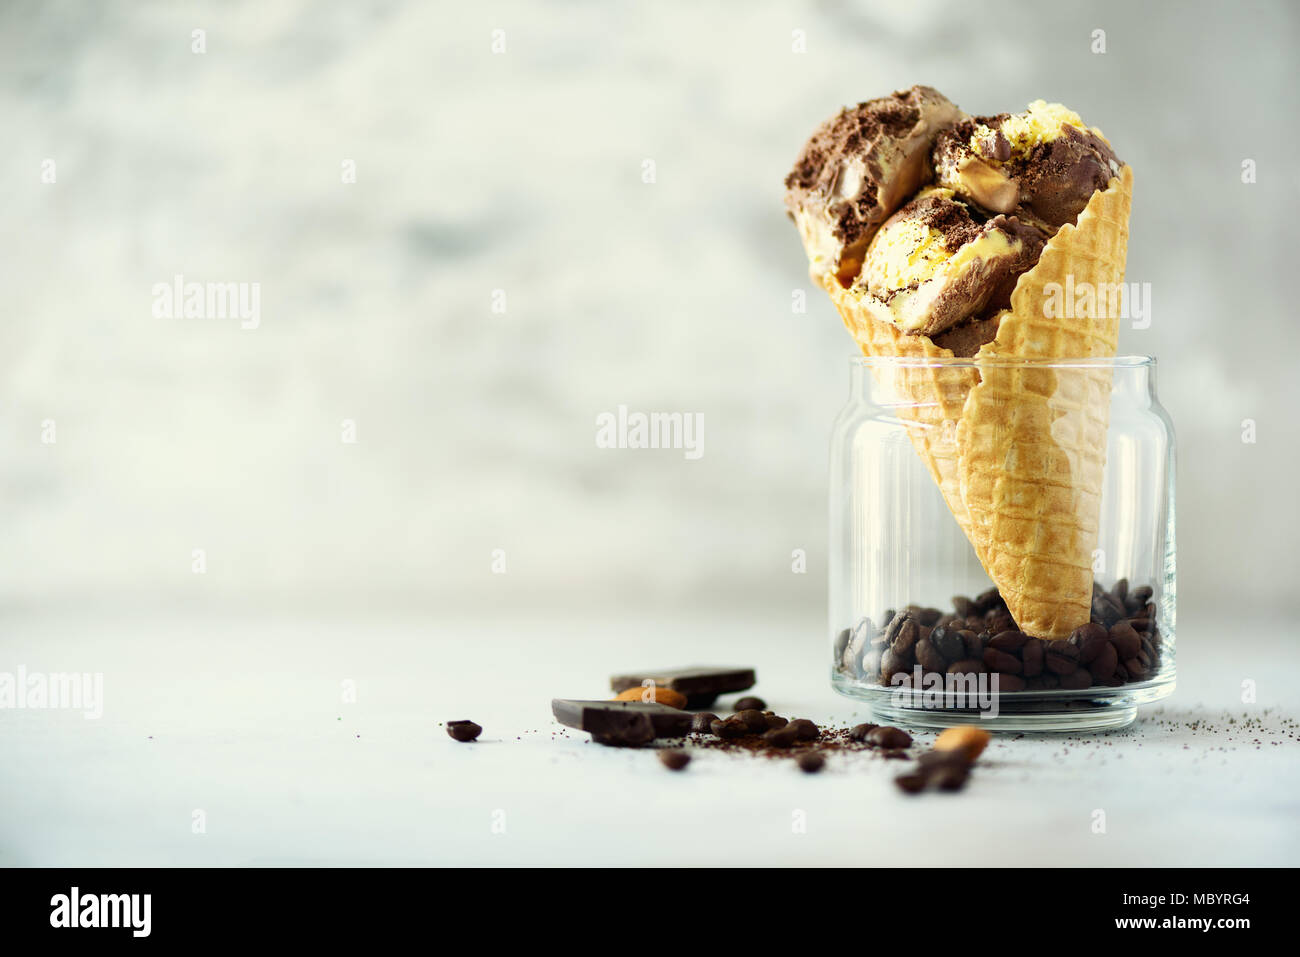 Chocolate and coffee ice cream in waffle cone with coffee beans on grey stone background. Summer food concept, copy space. Healthy gluten free ice-cream Stock Photo